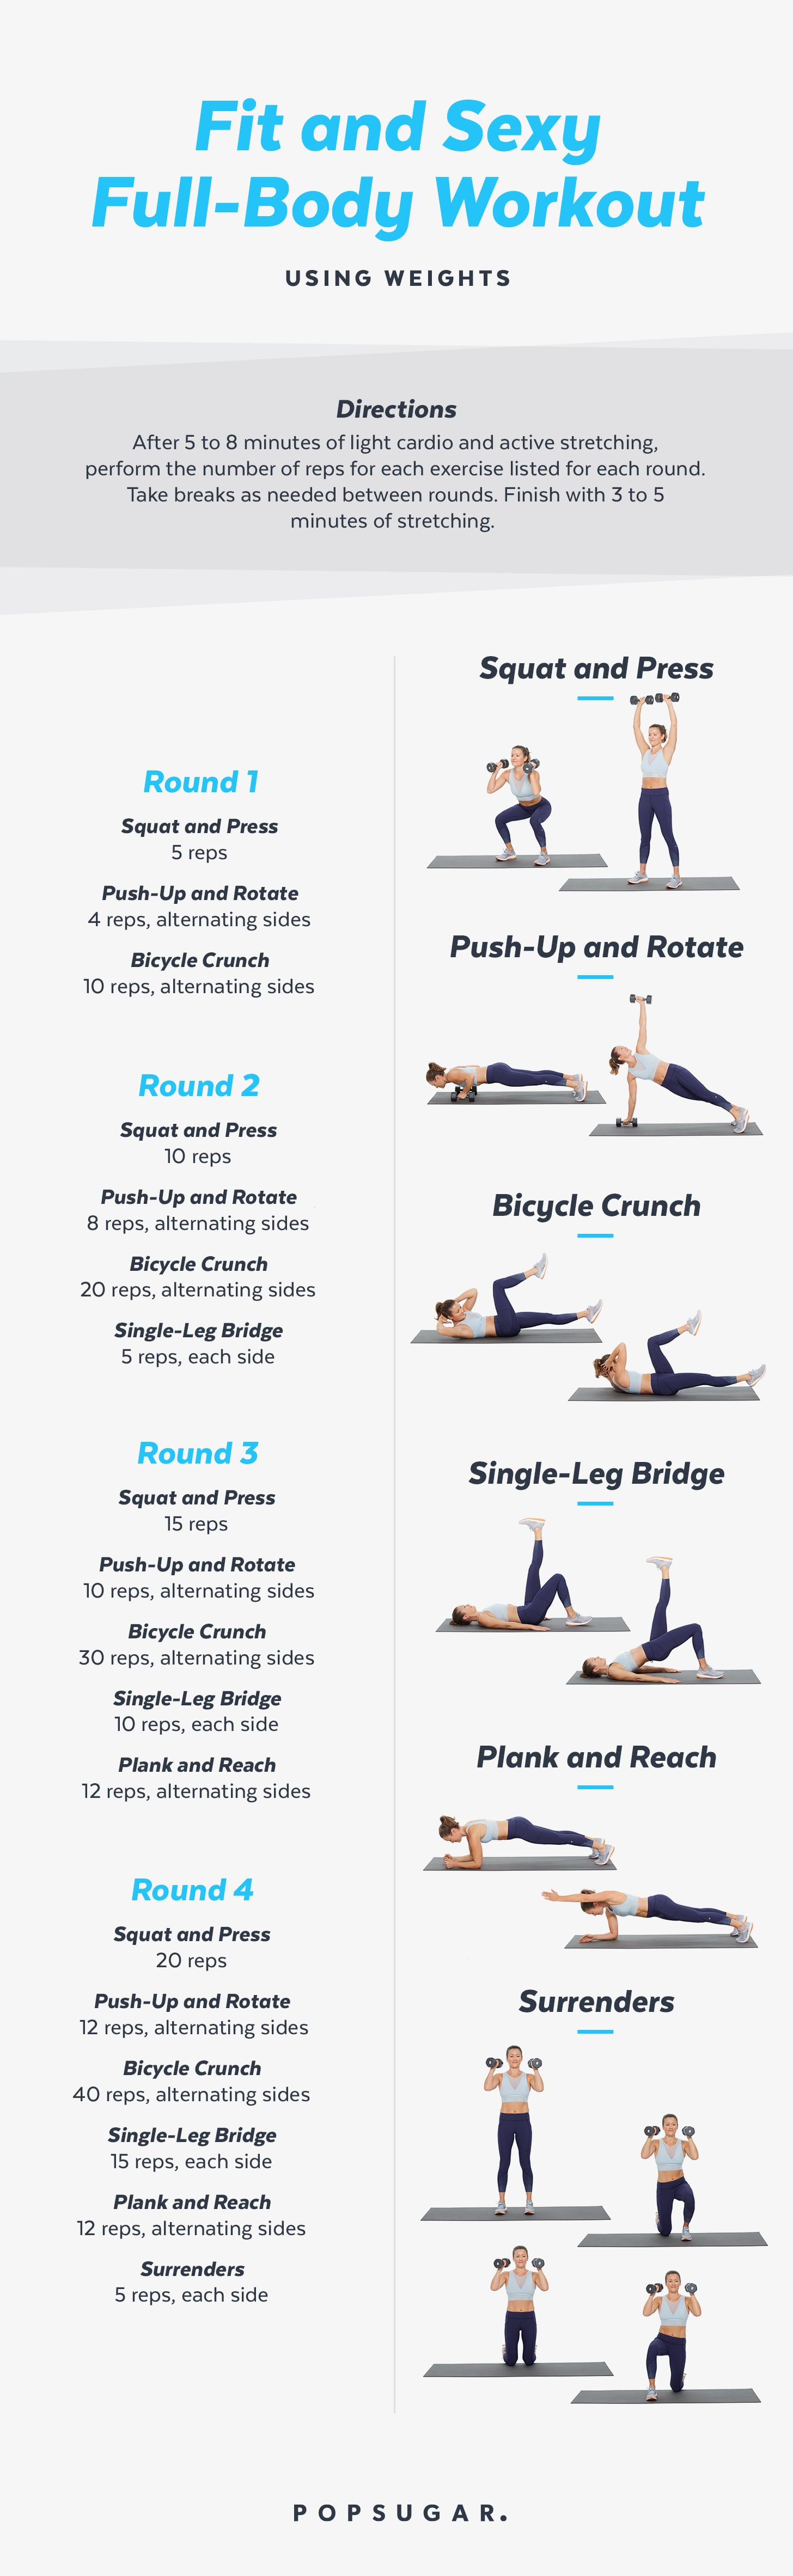 Click Here For A Printable PDF Of This Workout